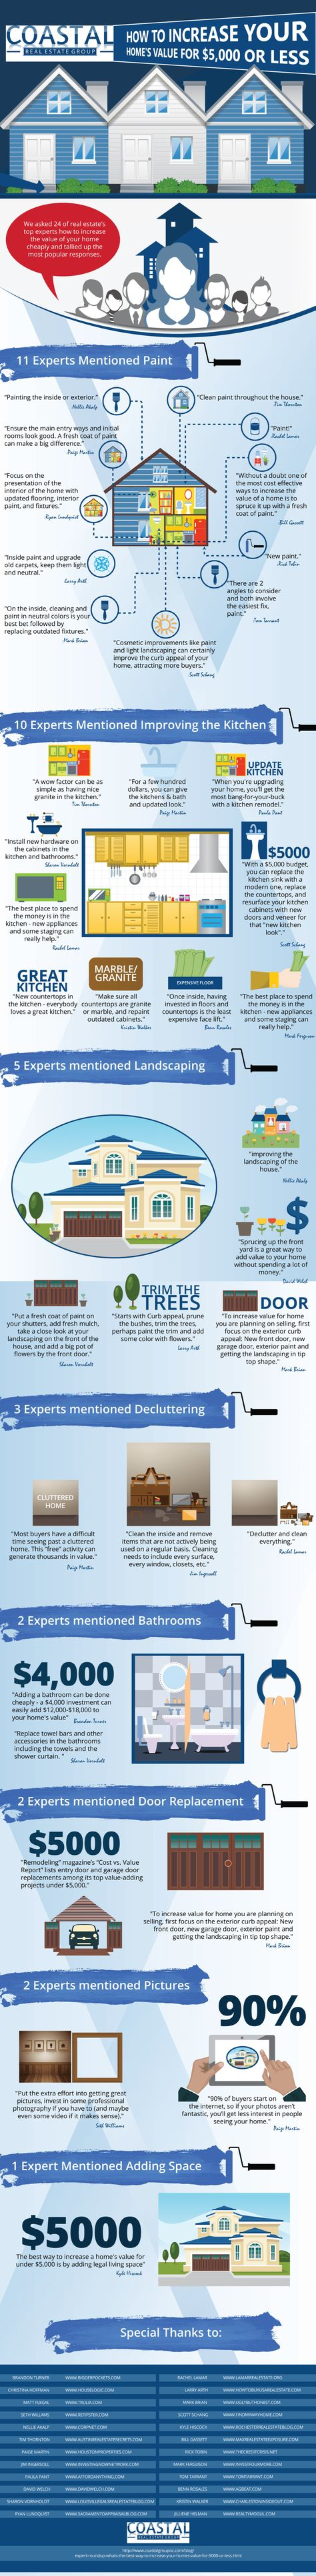 [Infographic] 24 Real Estate Experts Share Secrets on Boosting Home Values on a Budget - Coastal Real Estate Group : Coastal Real Estate Group